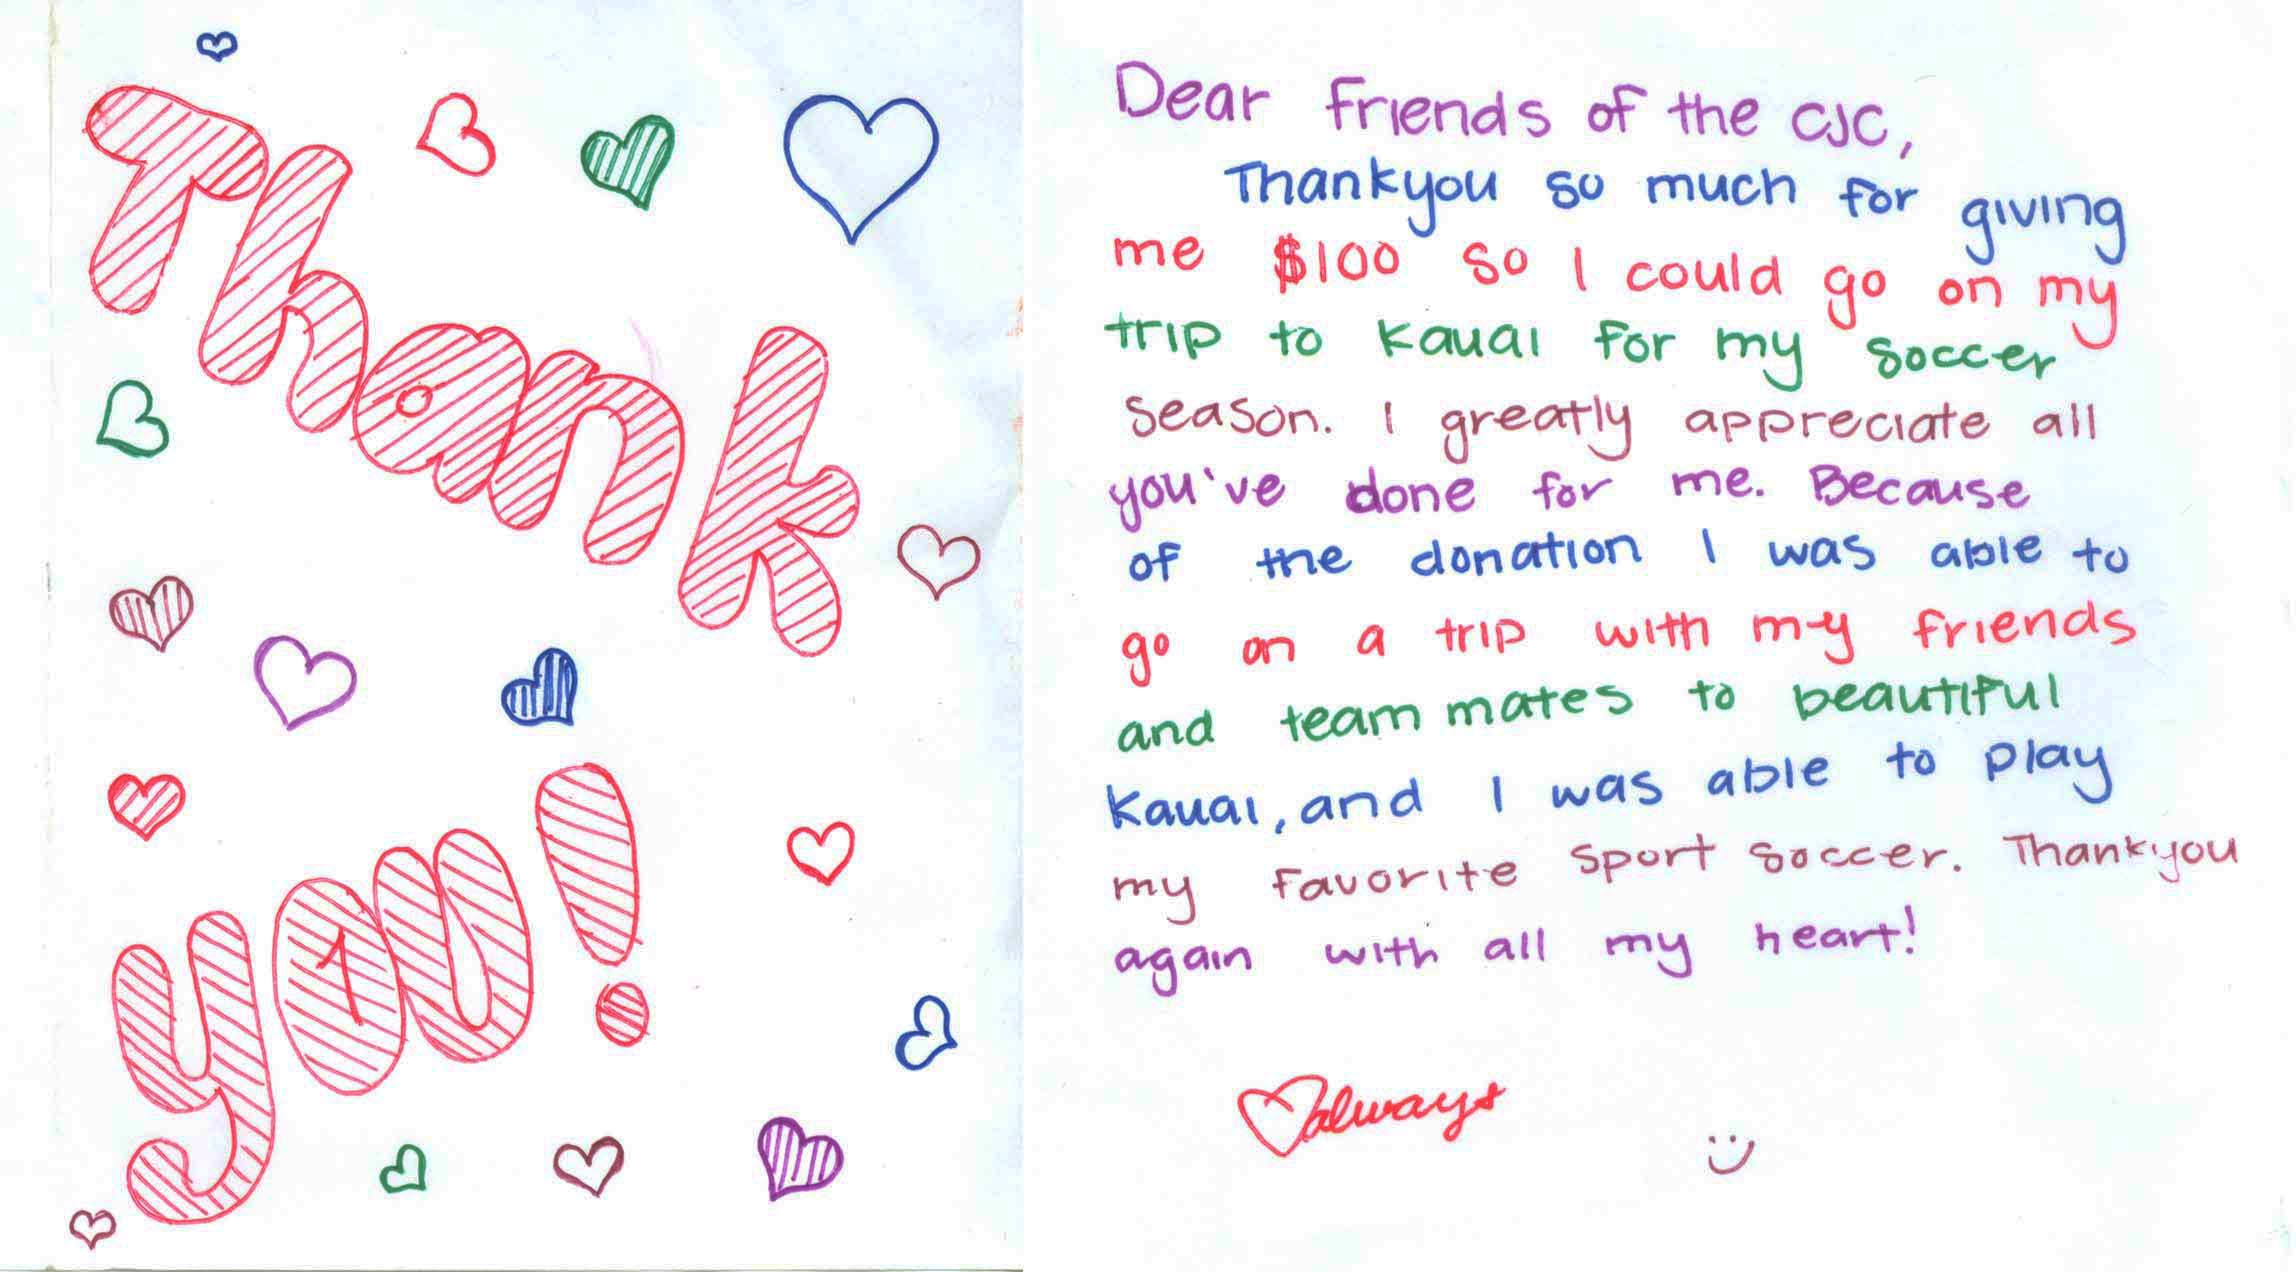 Child Thank you letter 4.